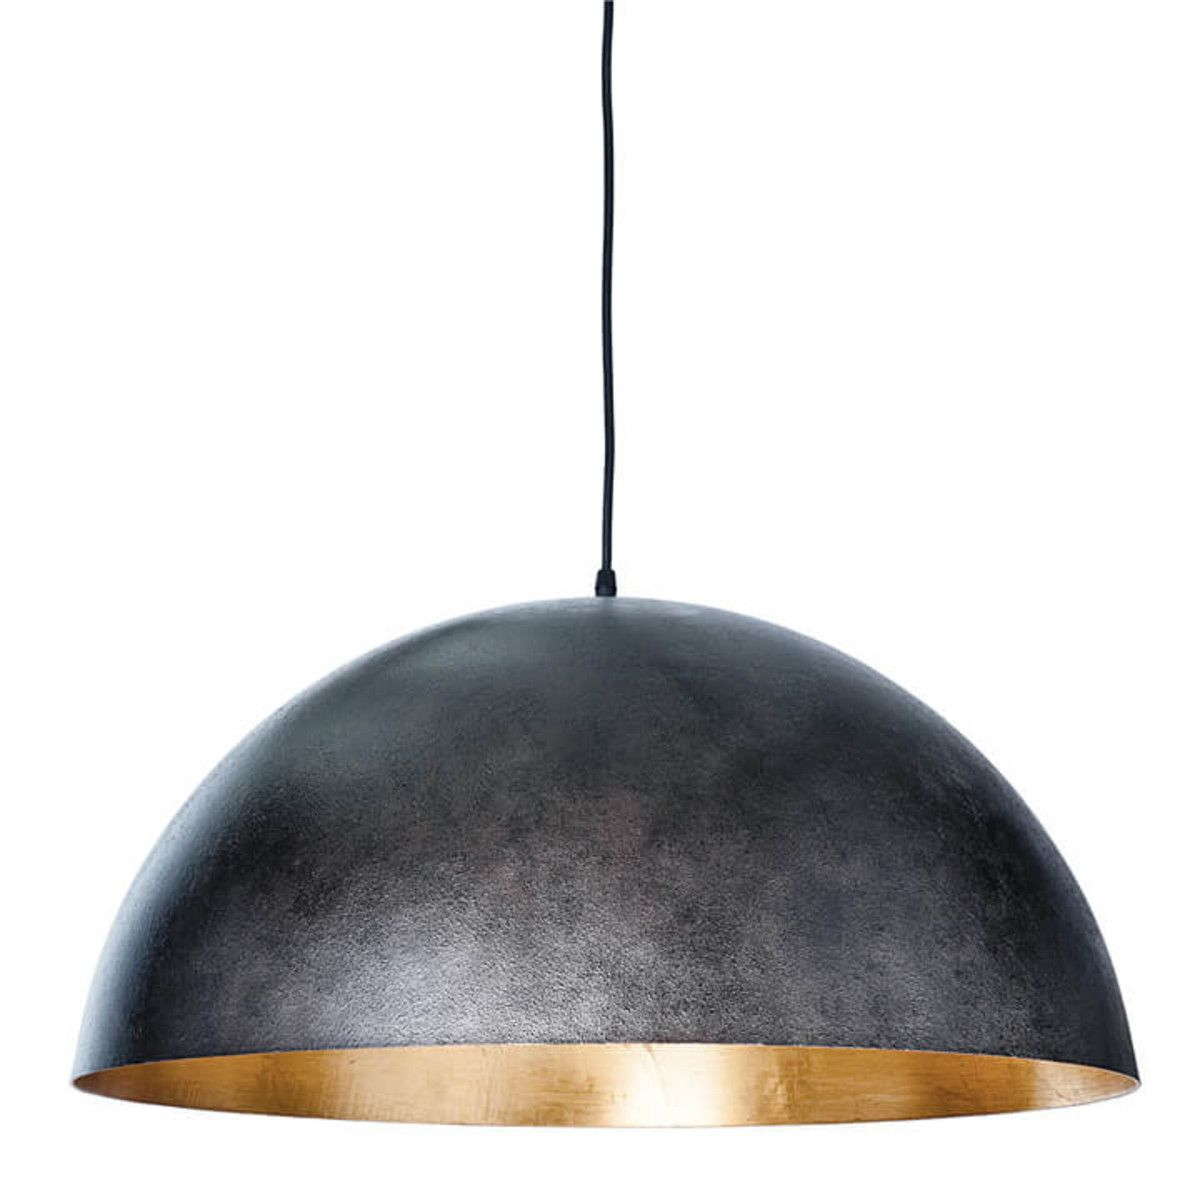 Gym Lighting Sigmund Pendant Large (Black & Gold For Newest Adriana Black 1 Light Single Dome Pendants (View 11 of 20)